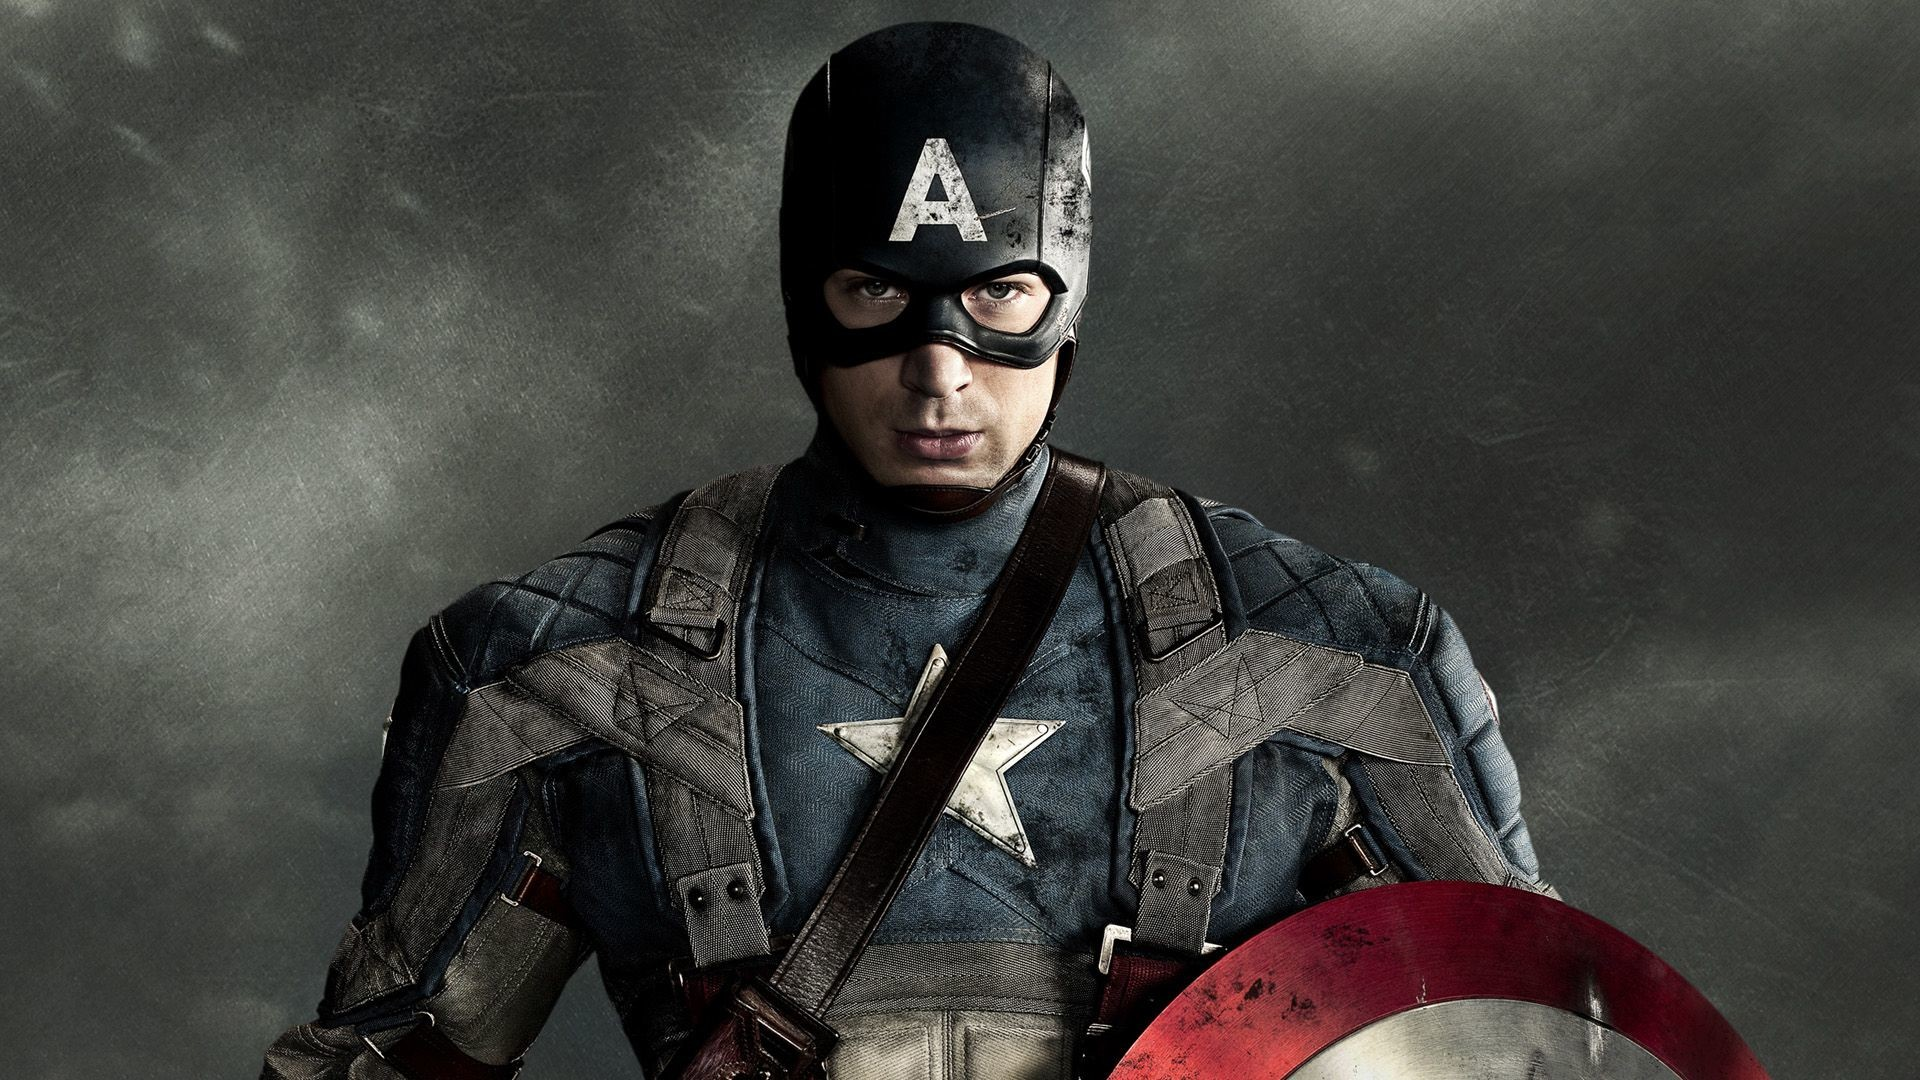 1920x1080 Captain America Winter Soldier Wallpaper Background Shield Desktop .